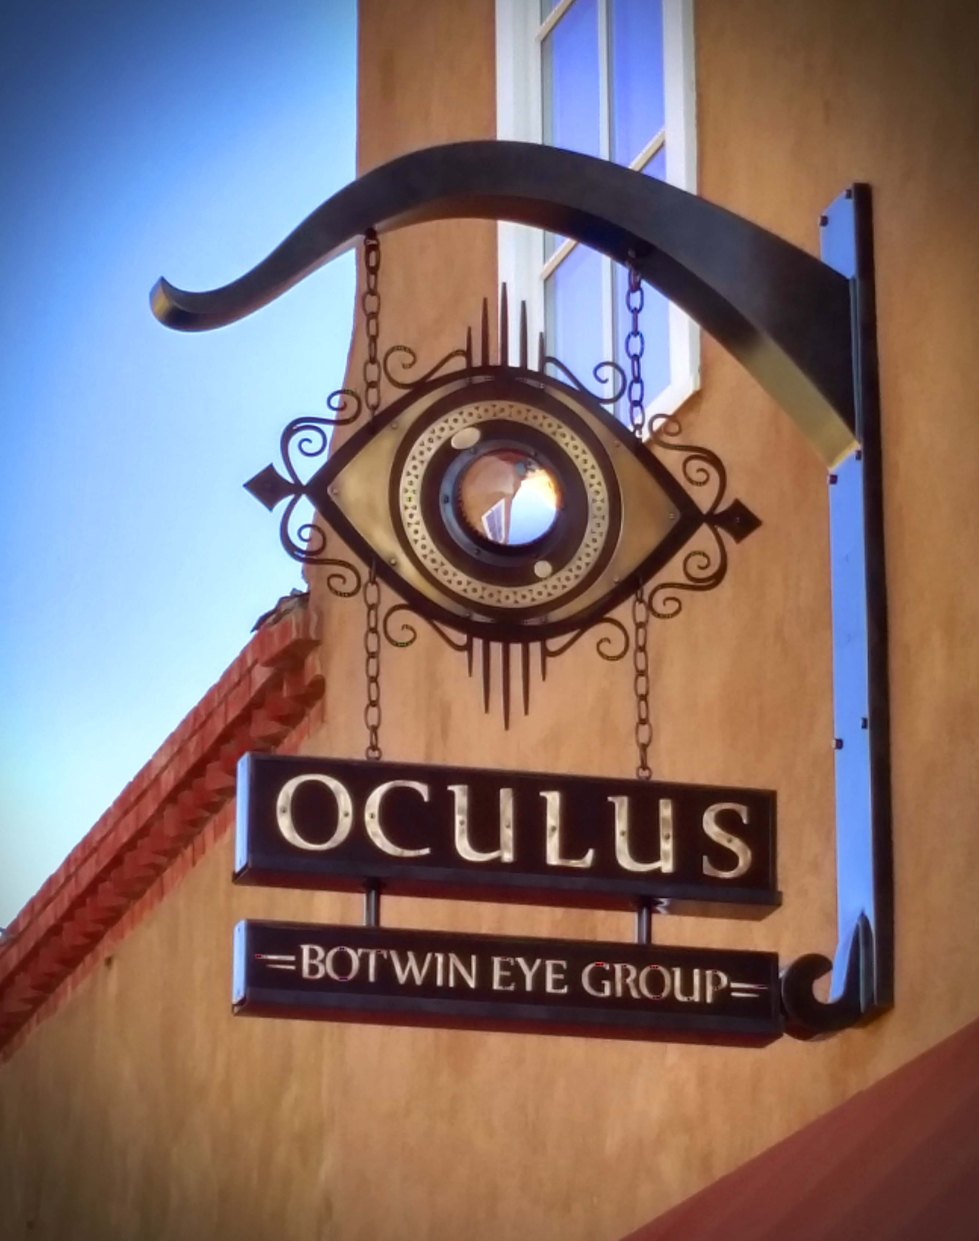 Oculus/Botwin Eye Group-125 W. Water Street, Santa Fe, New Mexico